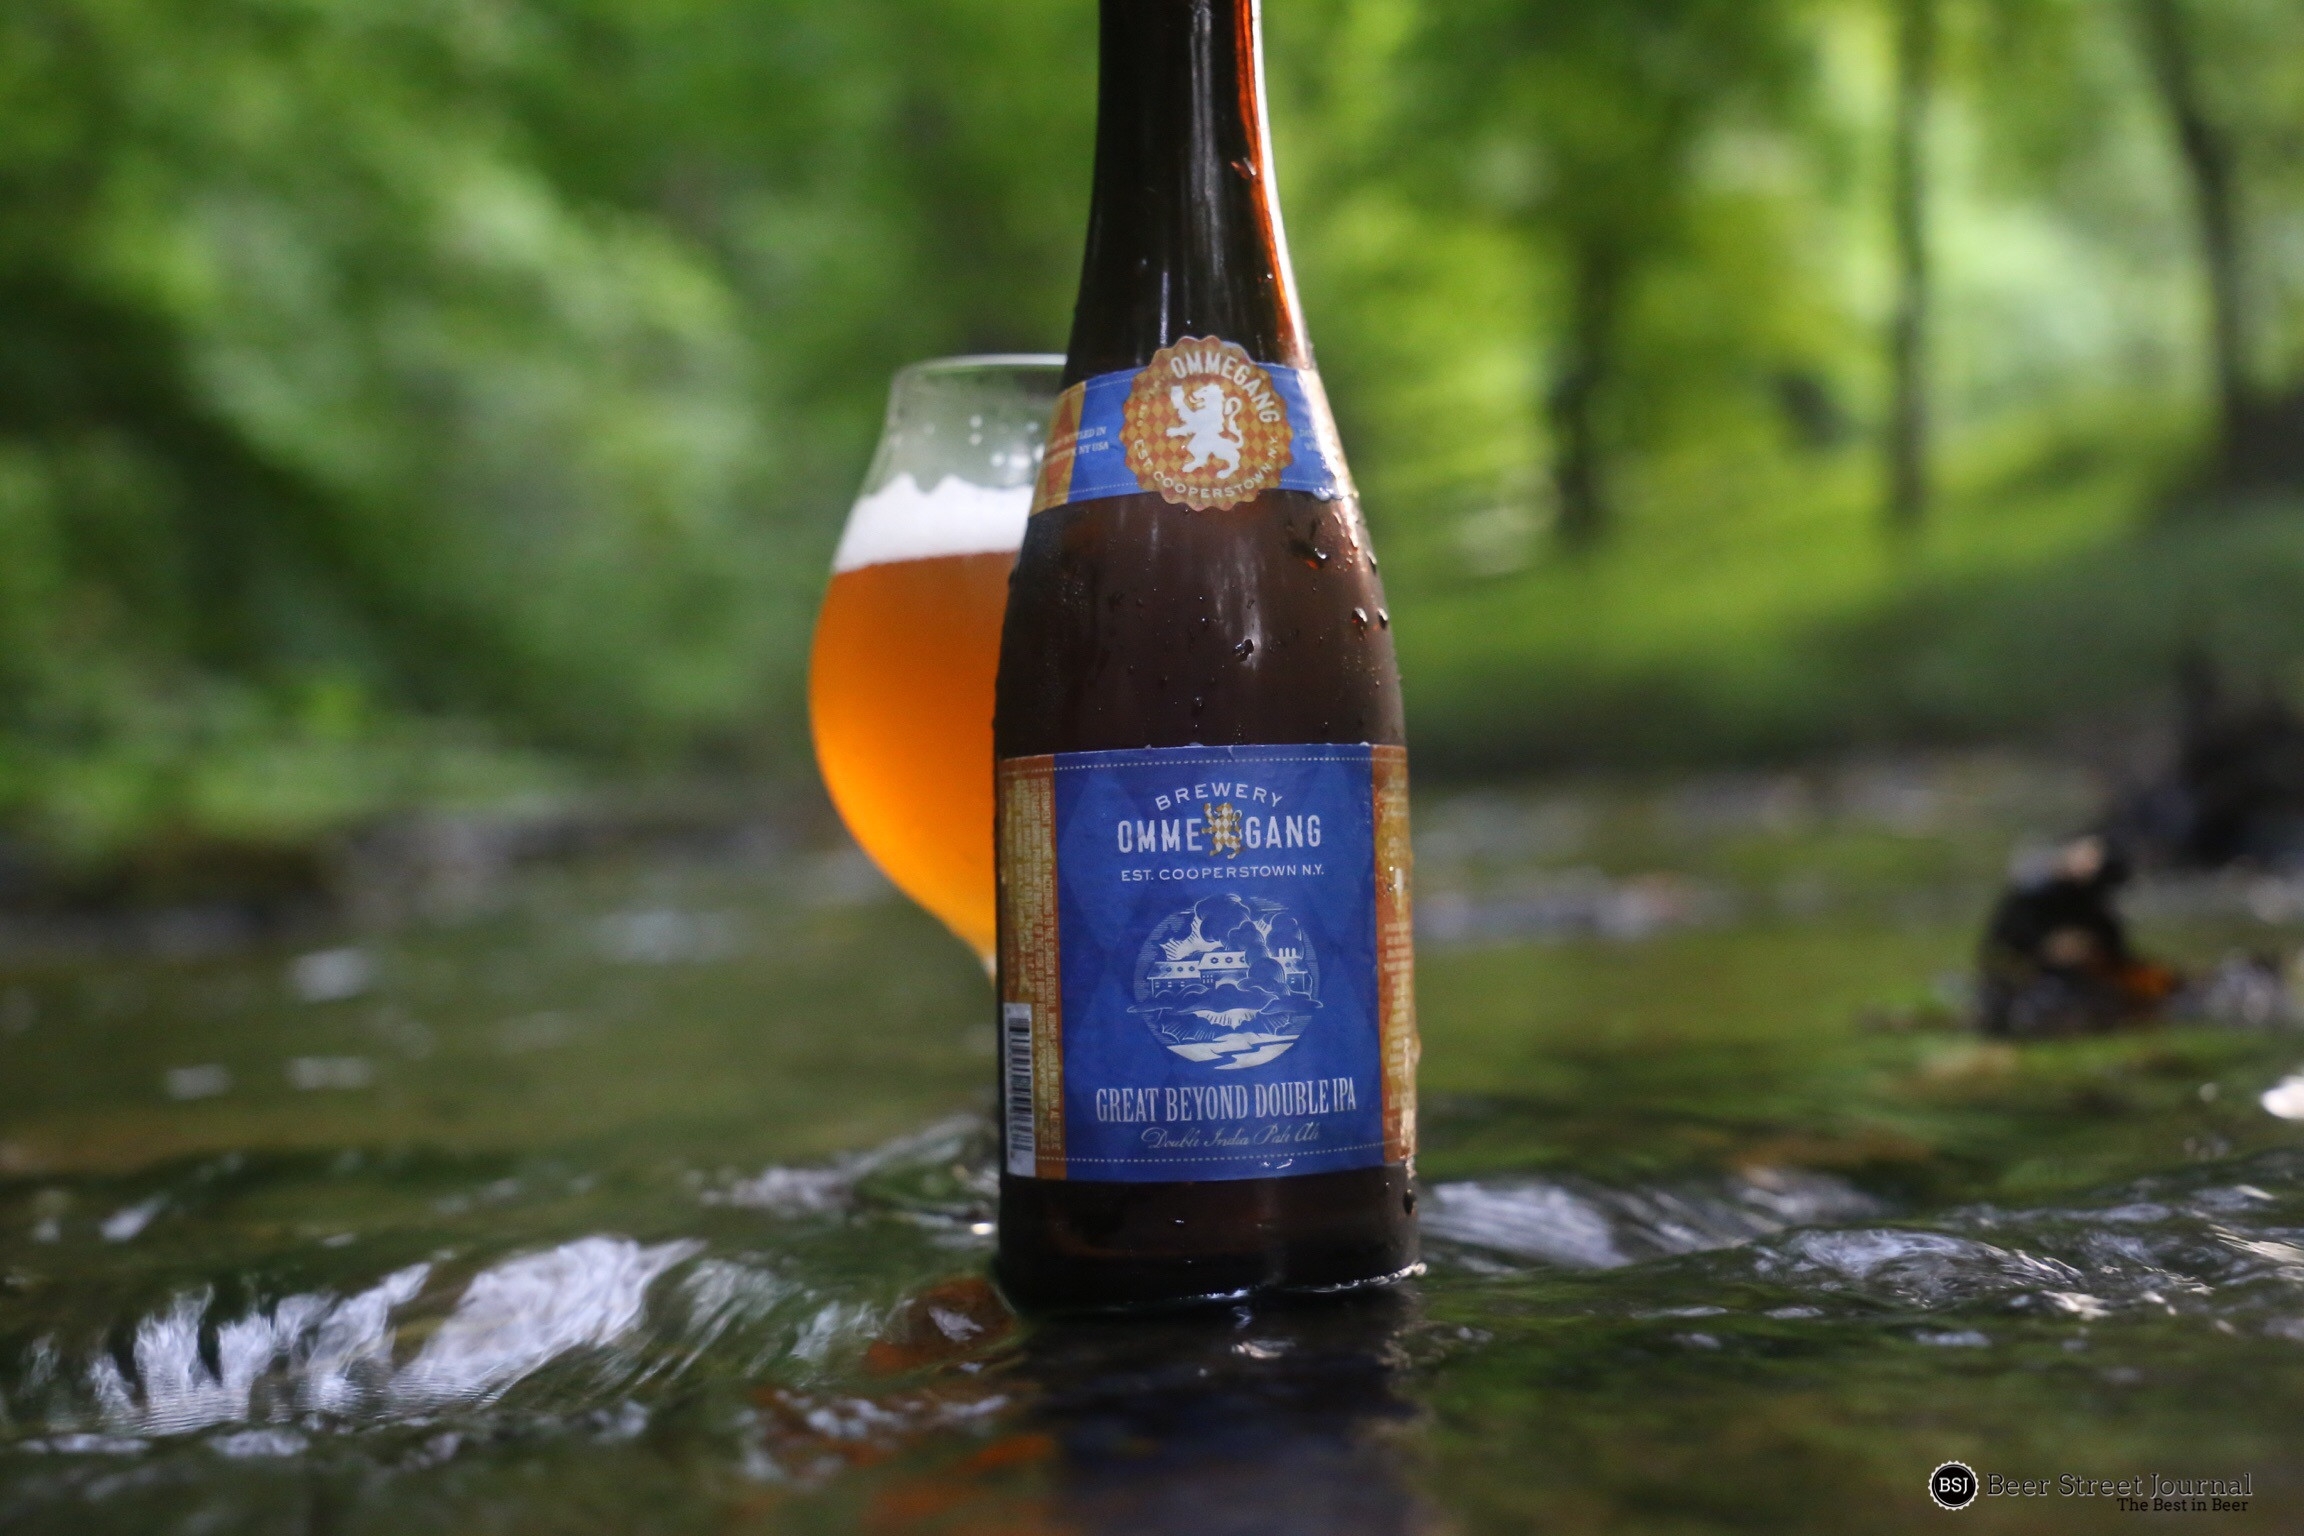 Ommegang Great Beyond (New York)-8.8% ABV